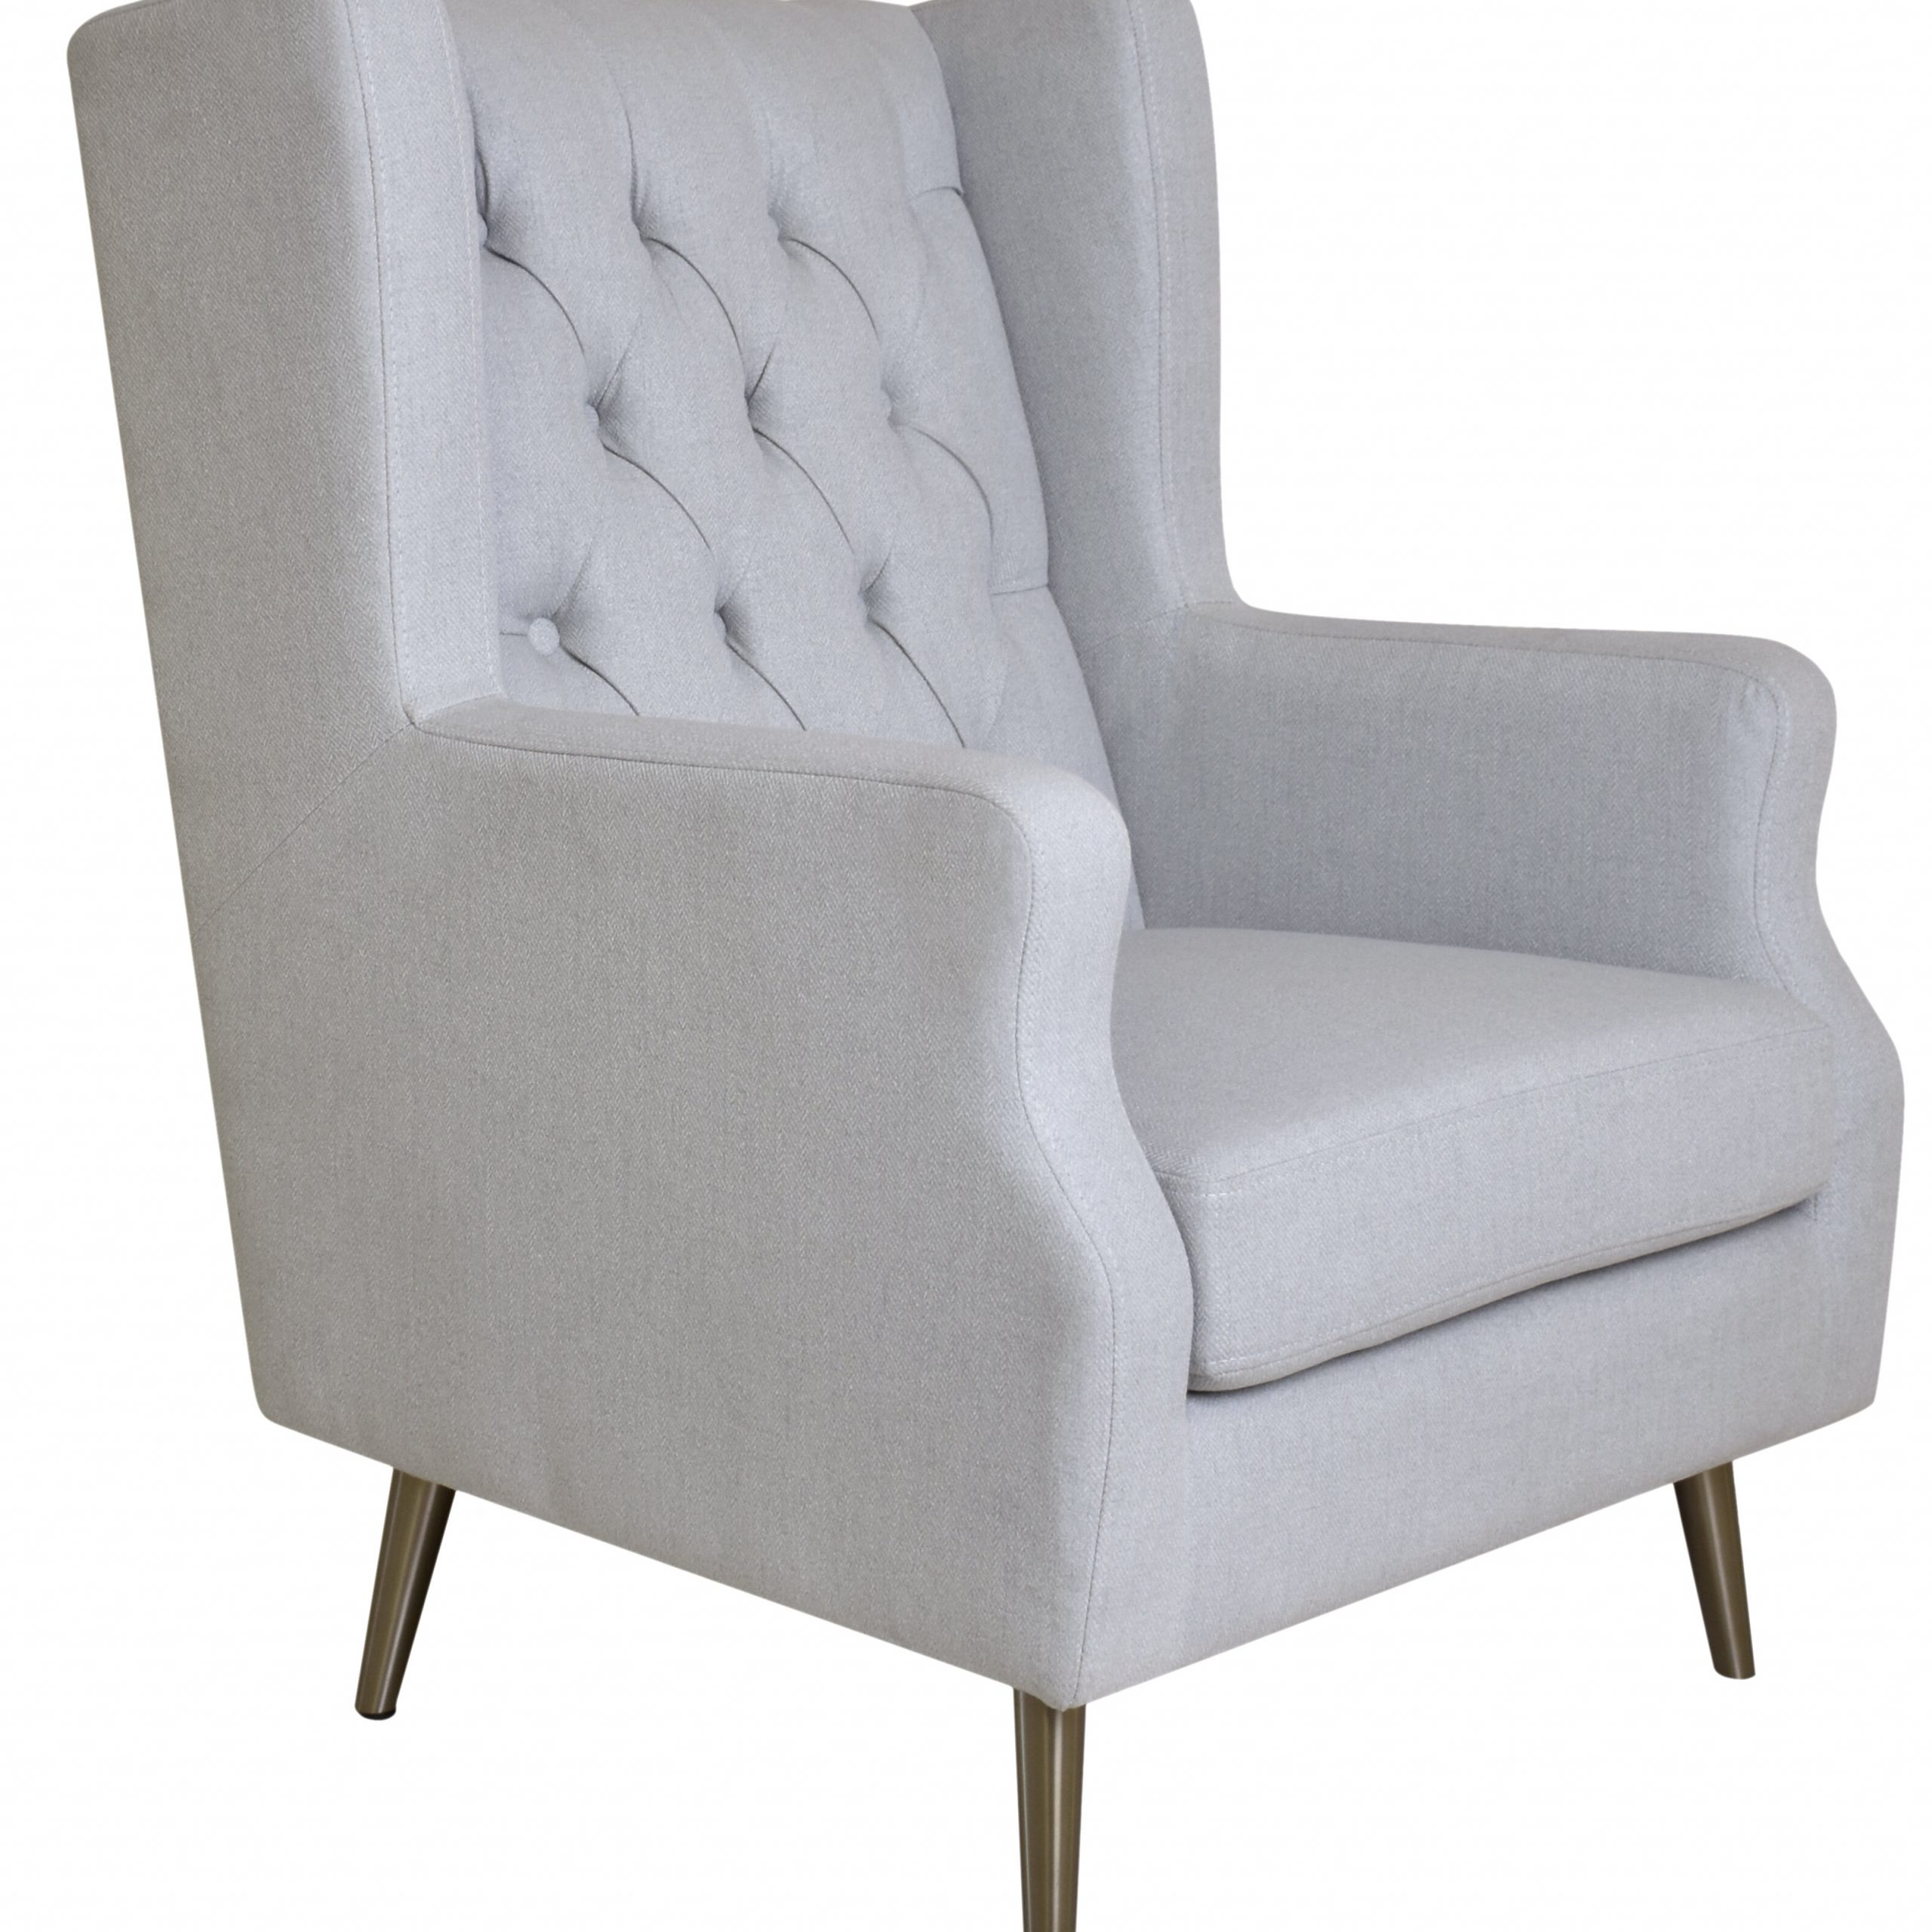 Best And Newest Thomas Wingback Chair Pertaining To Chagnon Wingback Chairs (View 19 of 20)